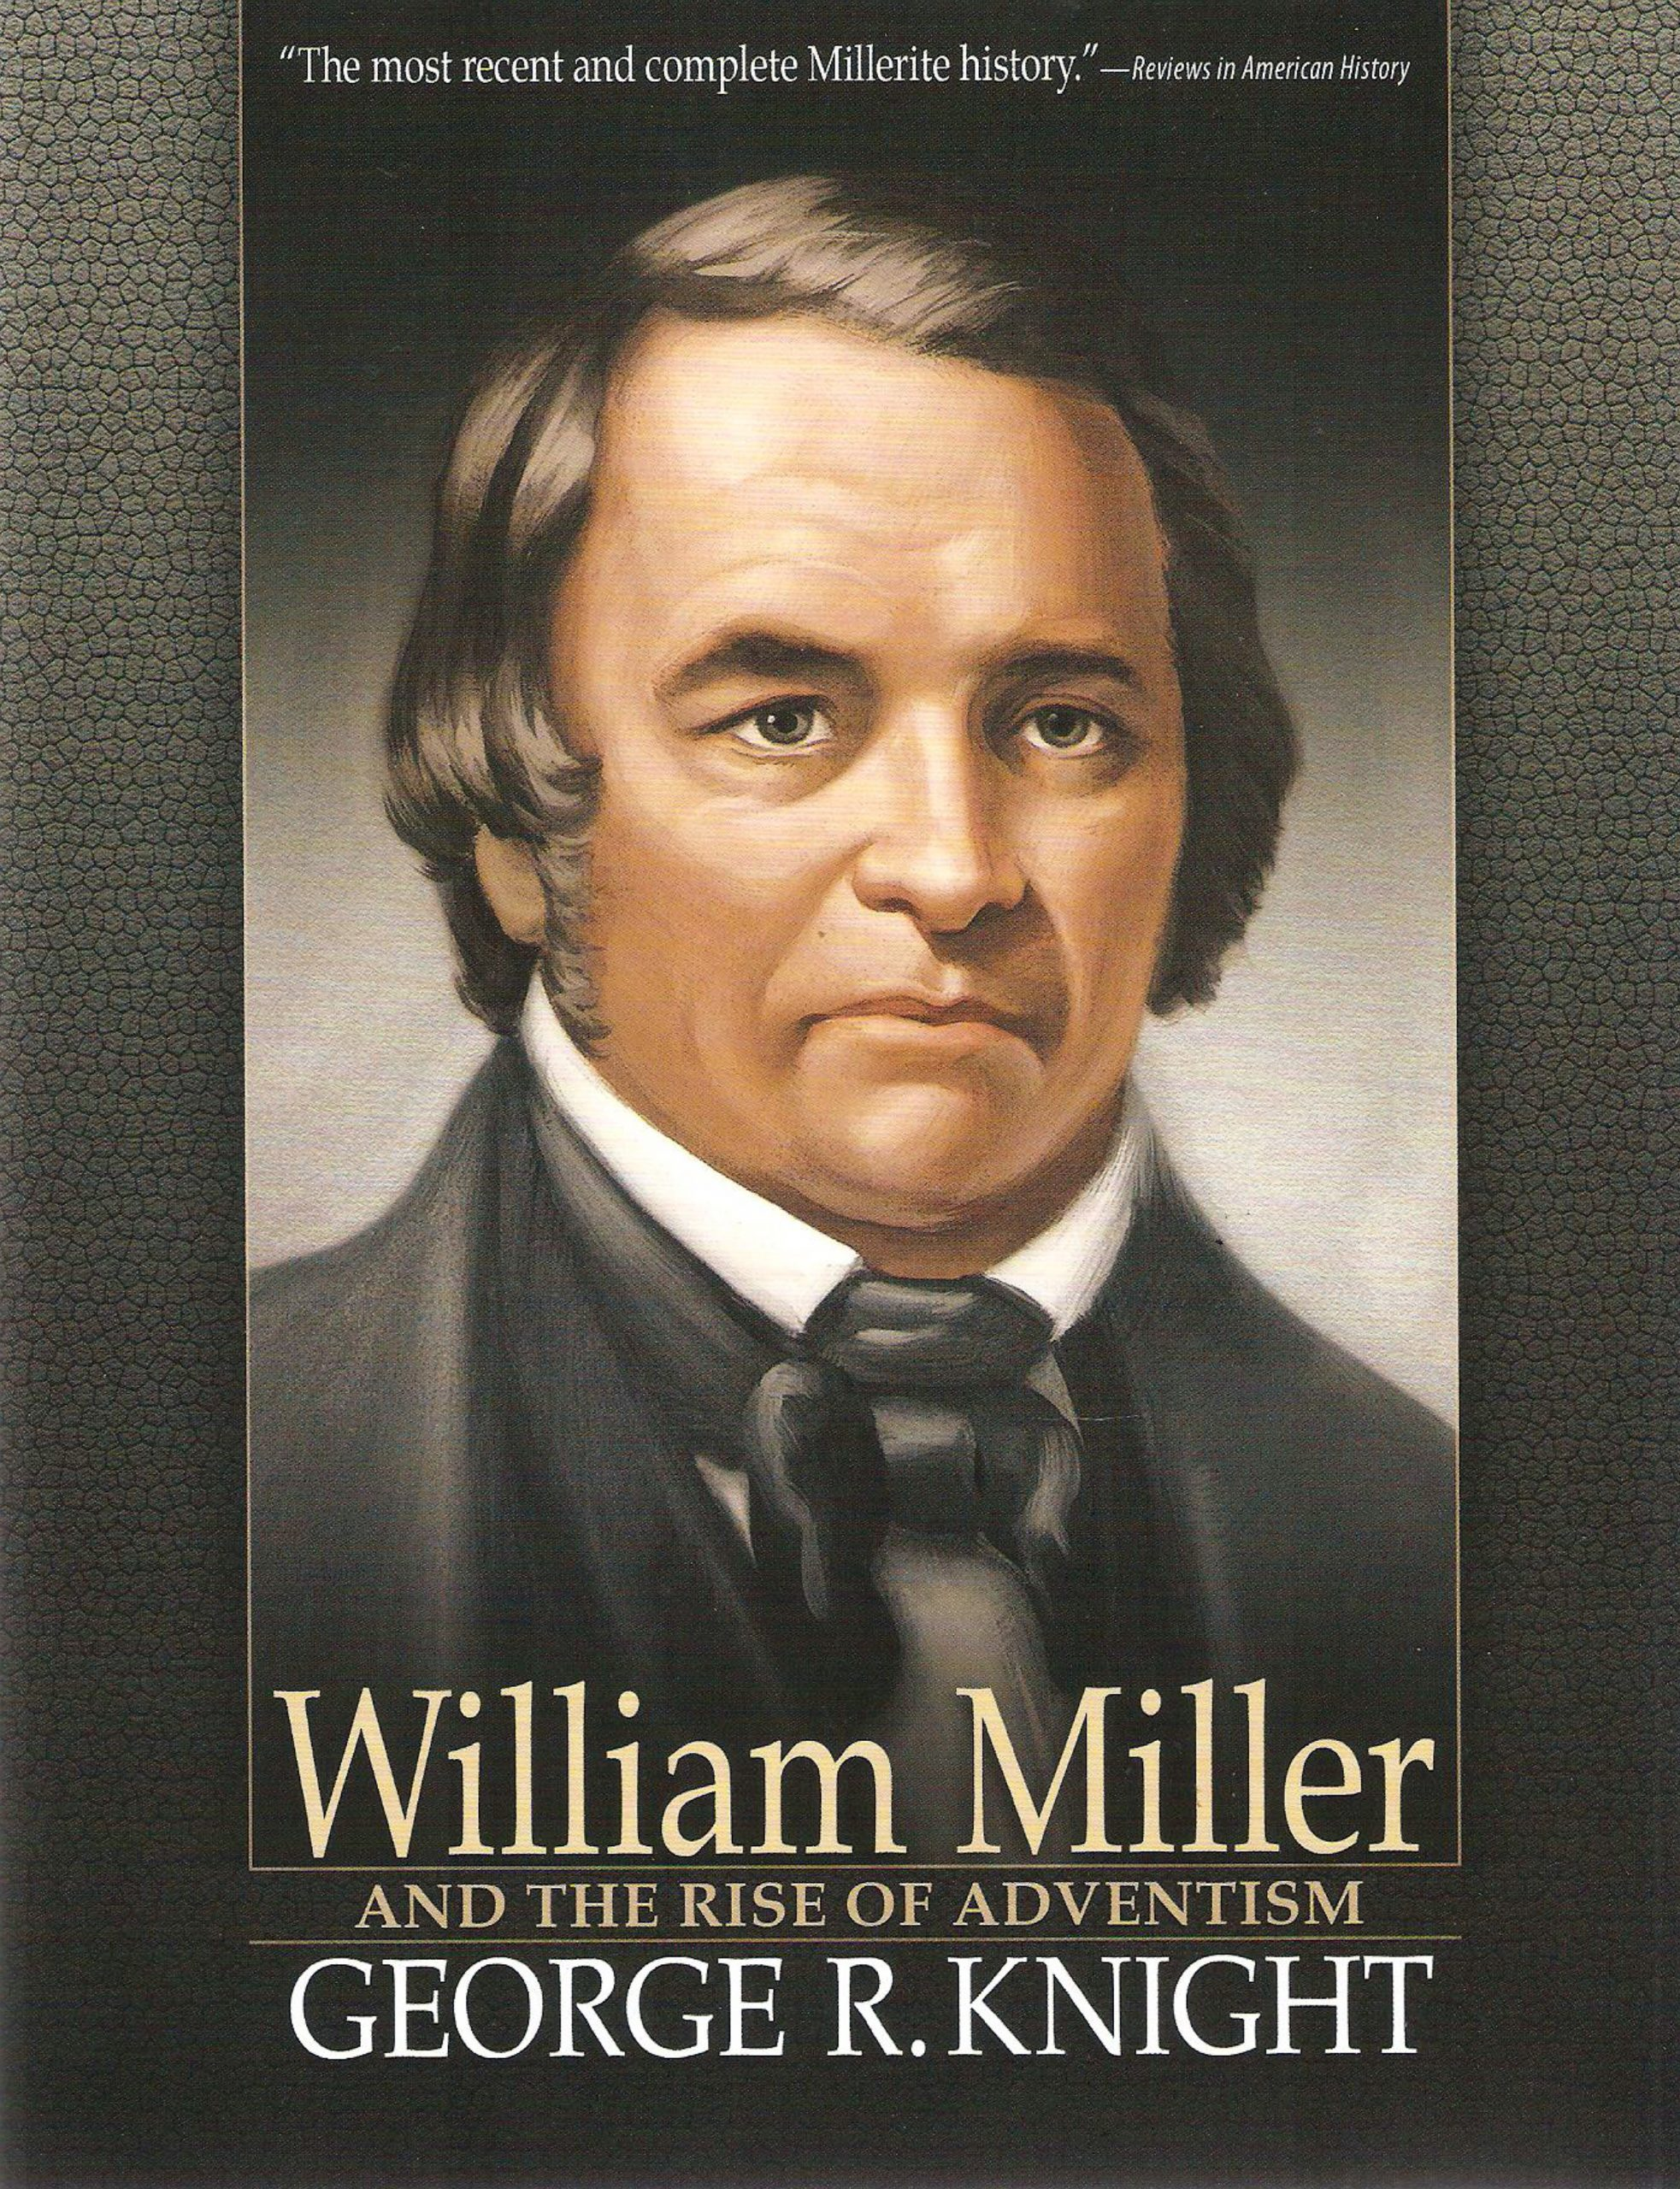 Wm Miller and the Rise of Adventism